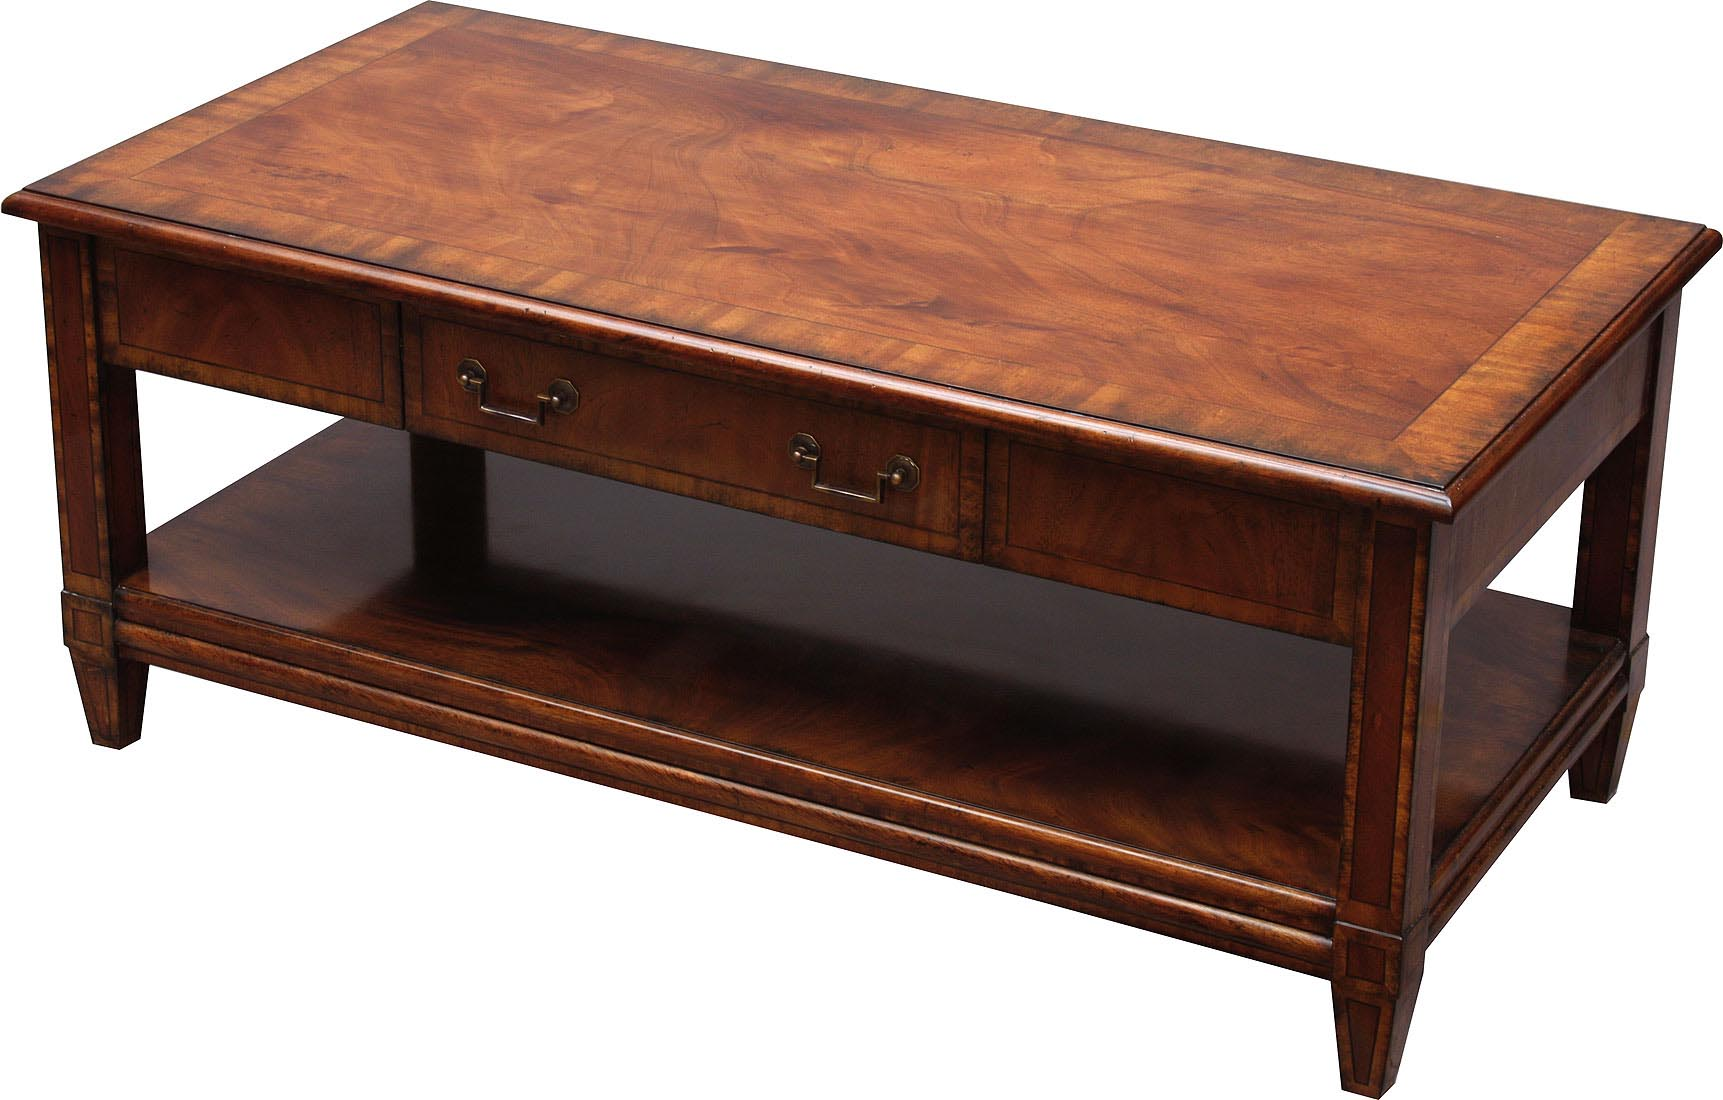 Mahogany coffee table antique coffee table design ideas Furniture coffee tables